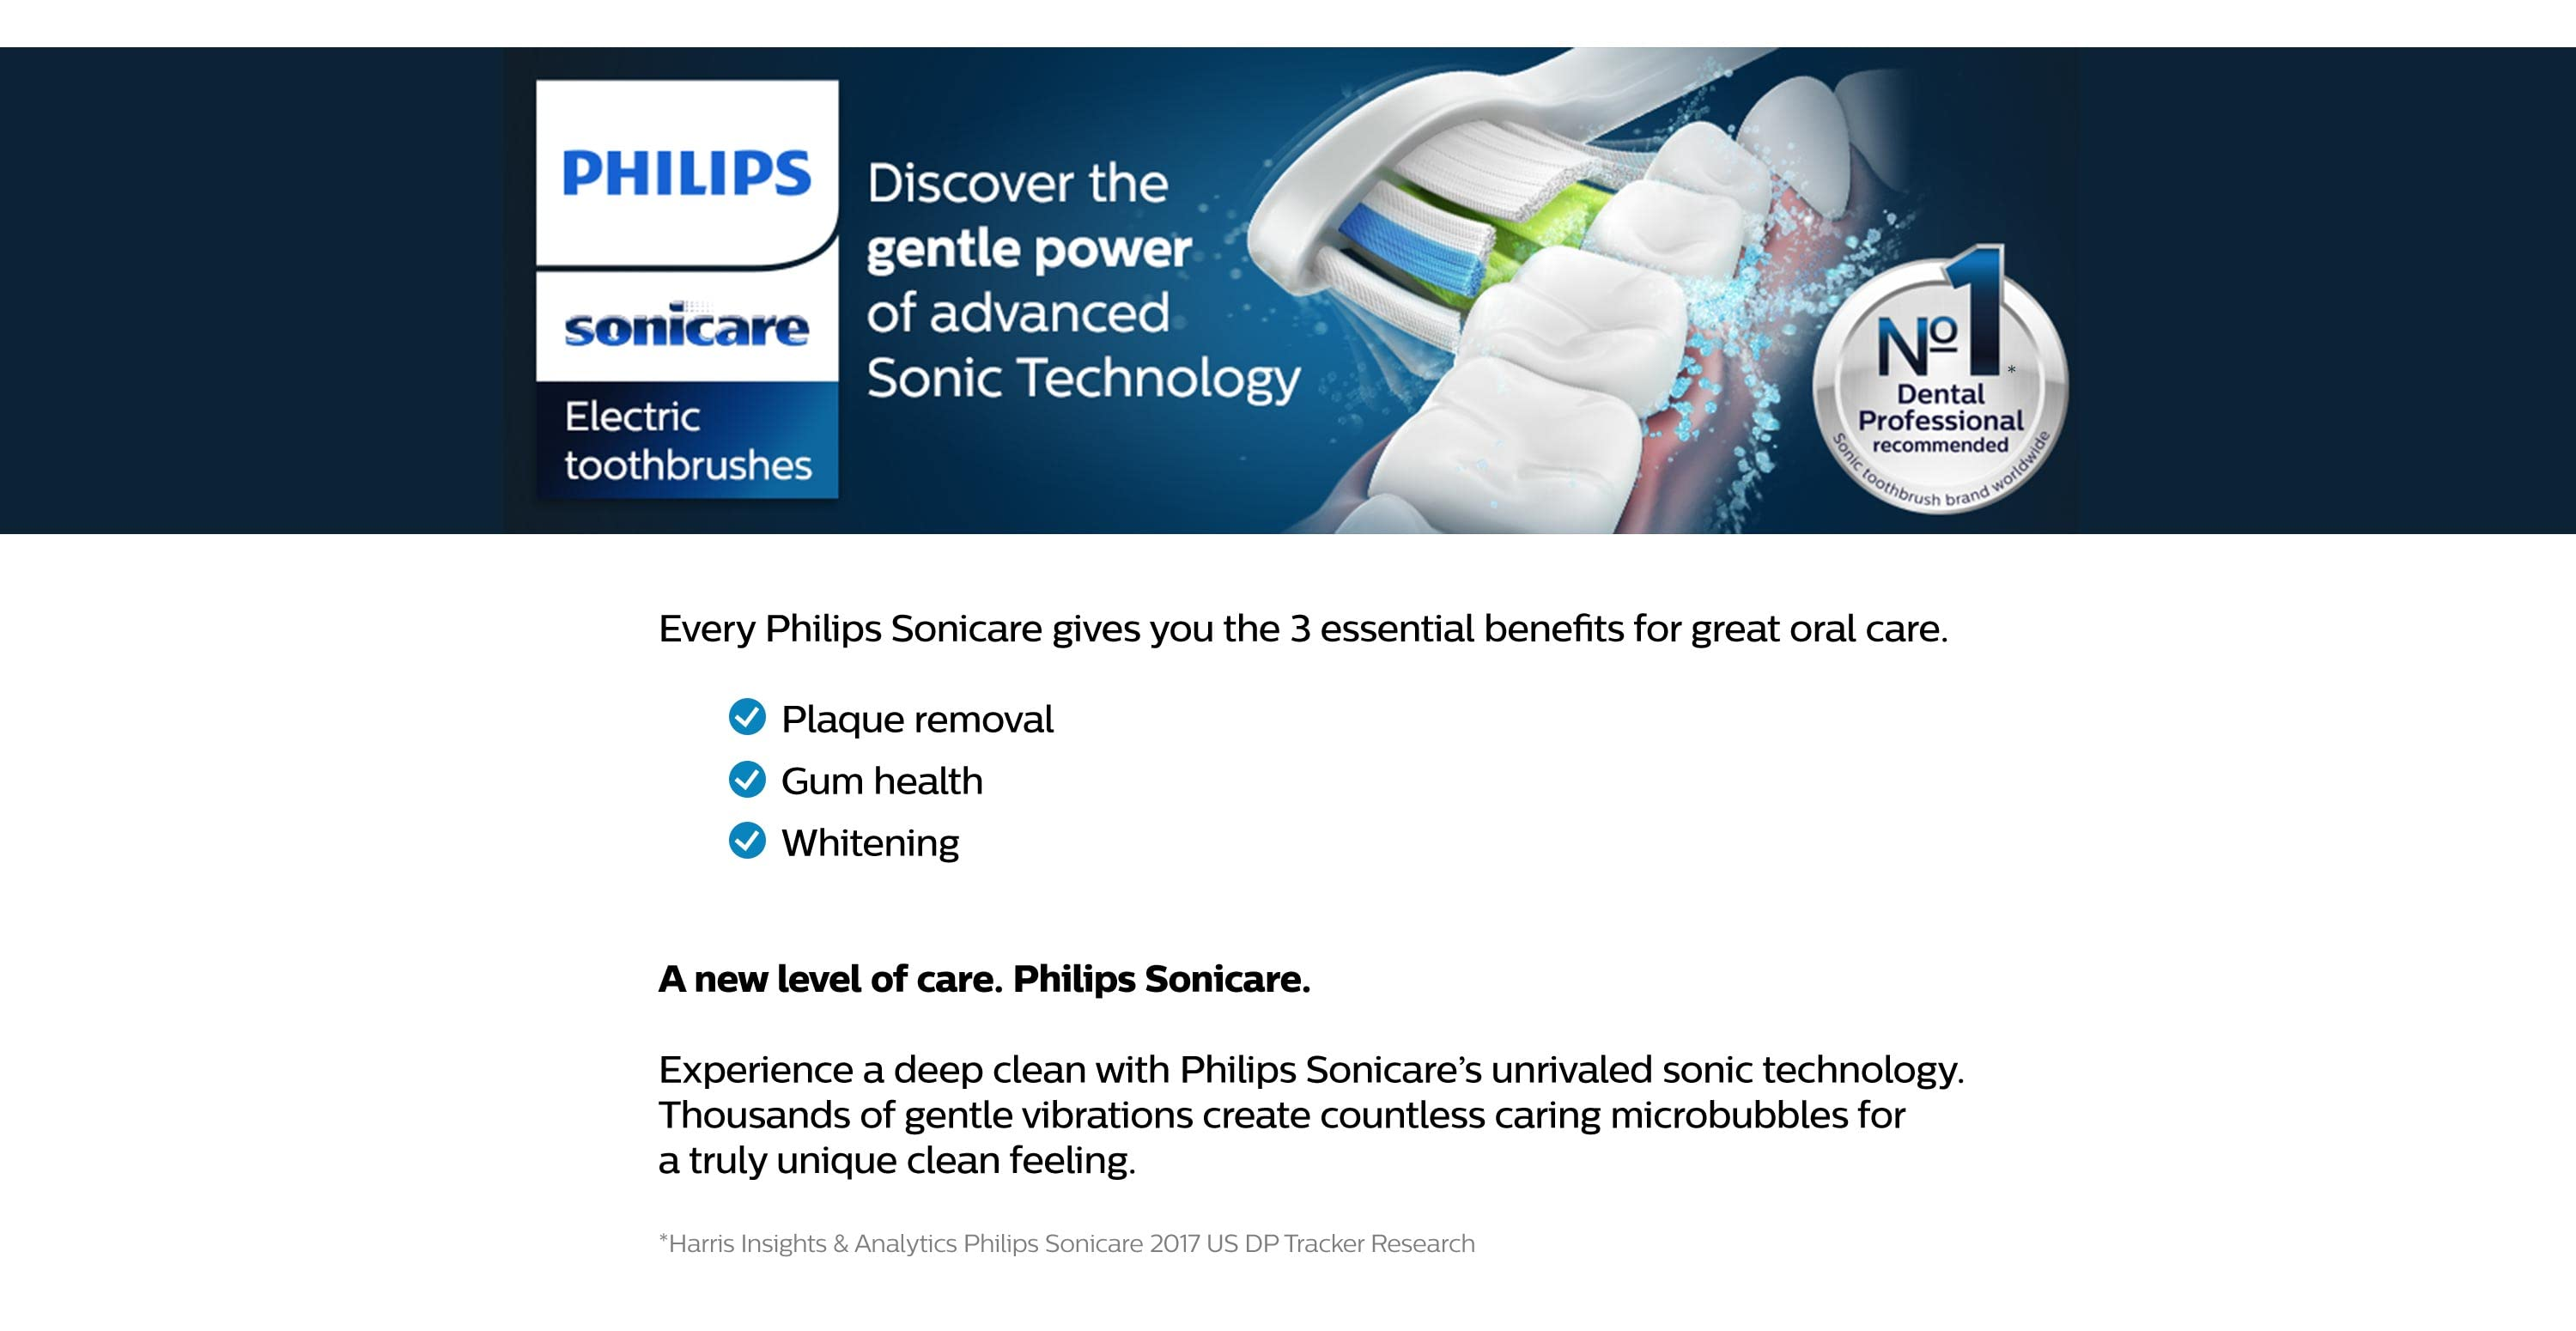 Discover the gentle power of advanced Sonic Technology